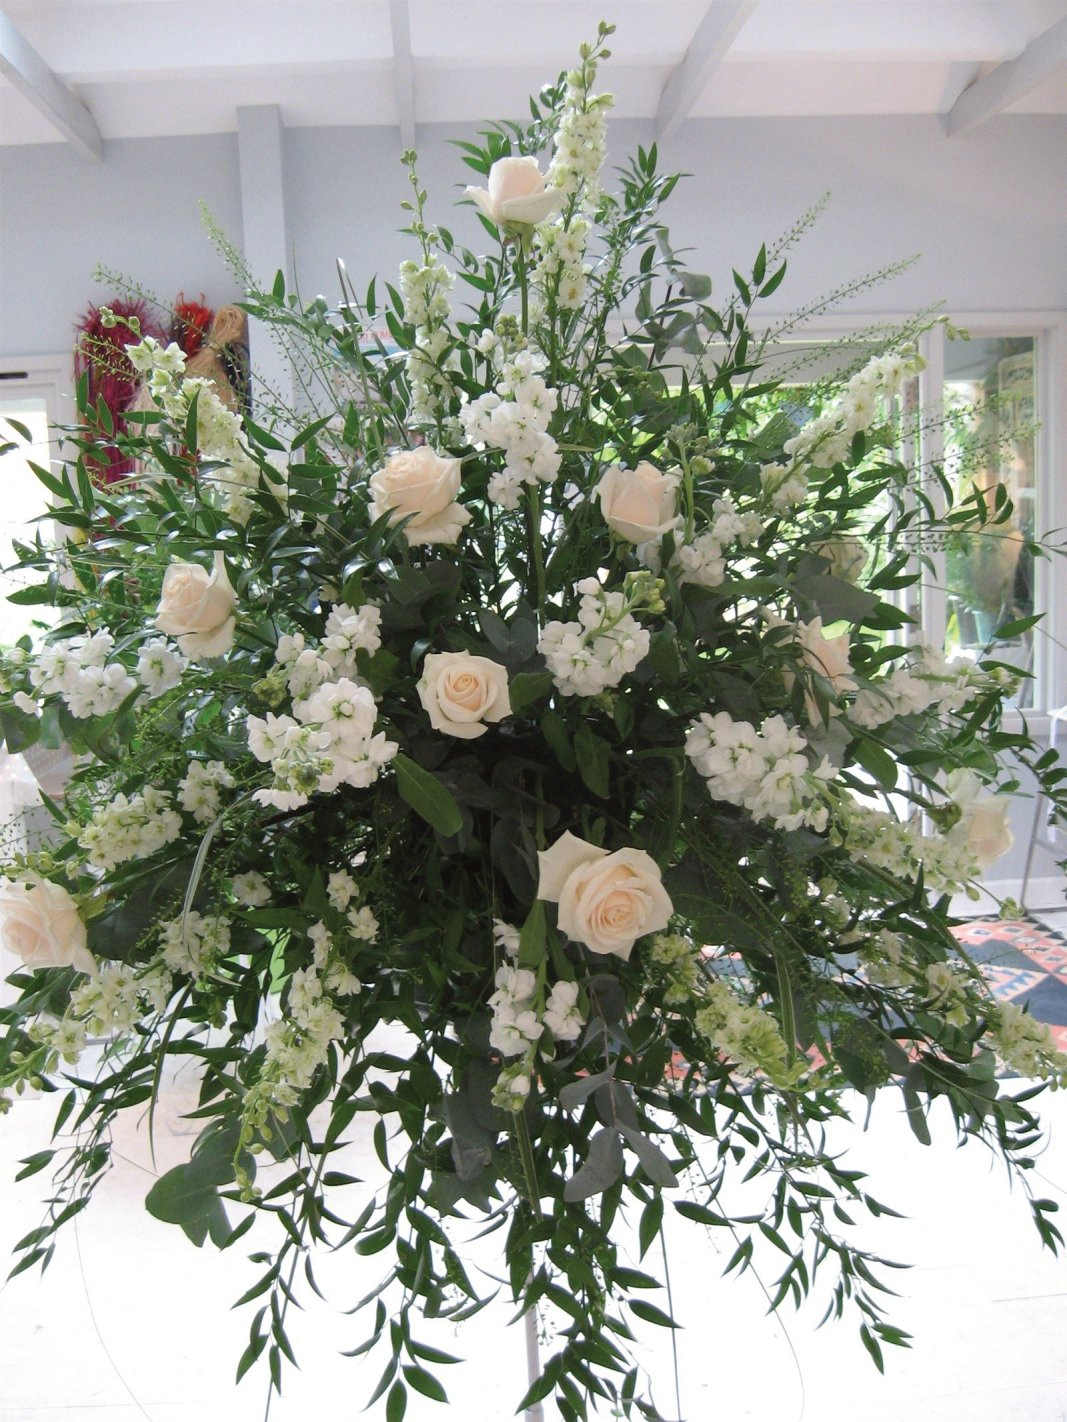 WEDDING FLOWERS KENT FLORIST USING VENDELA ROSE FOR PEDESTAL DISPLAY AT RECEPTION!